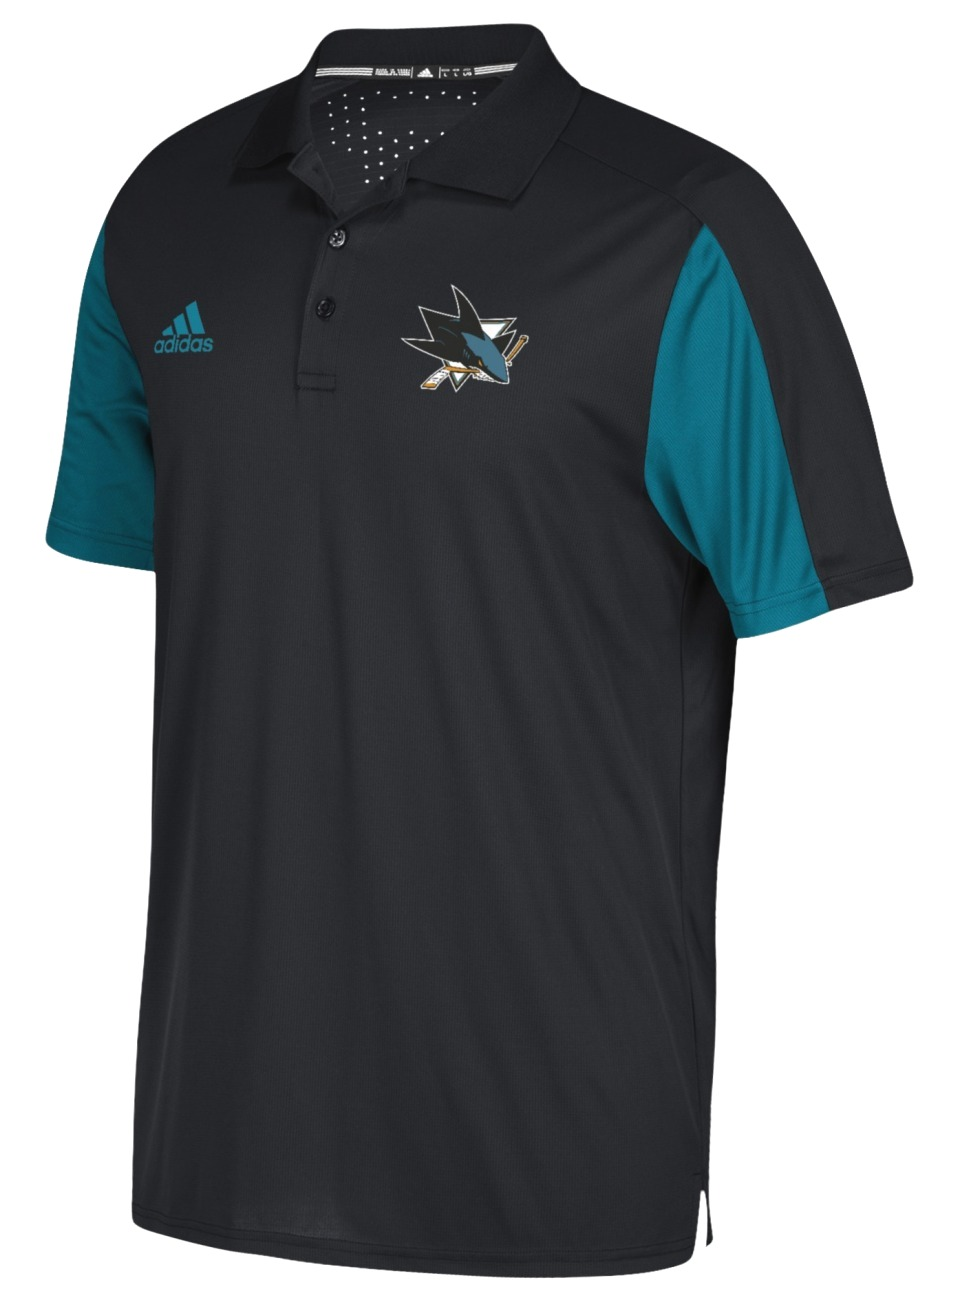 San Jose Sharks Adidas NHL Men's 2017 Authentic Game Day Polo Shirt